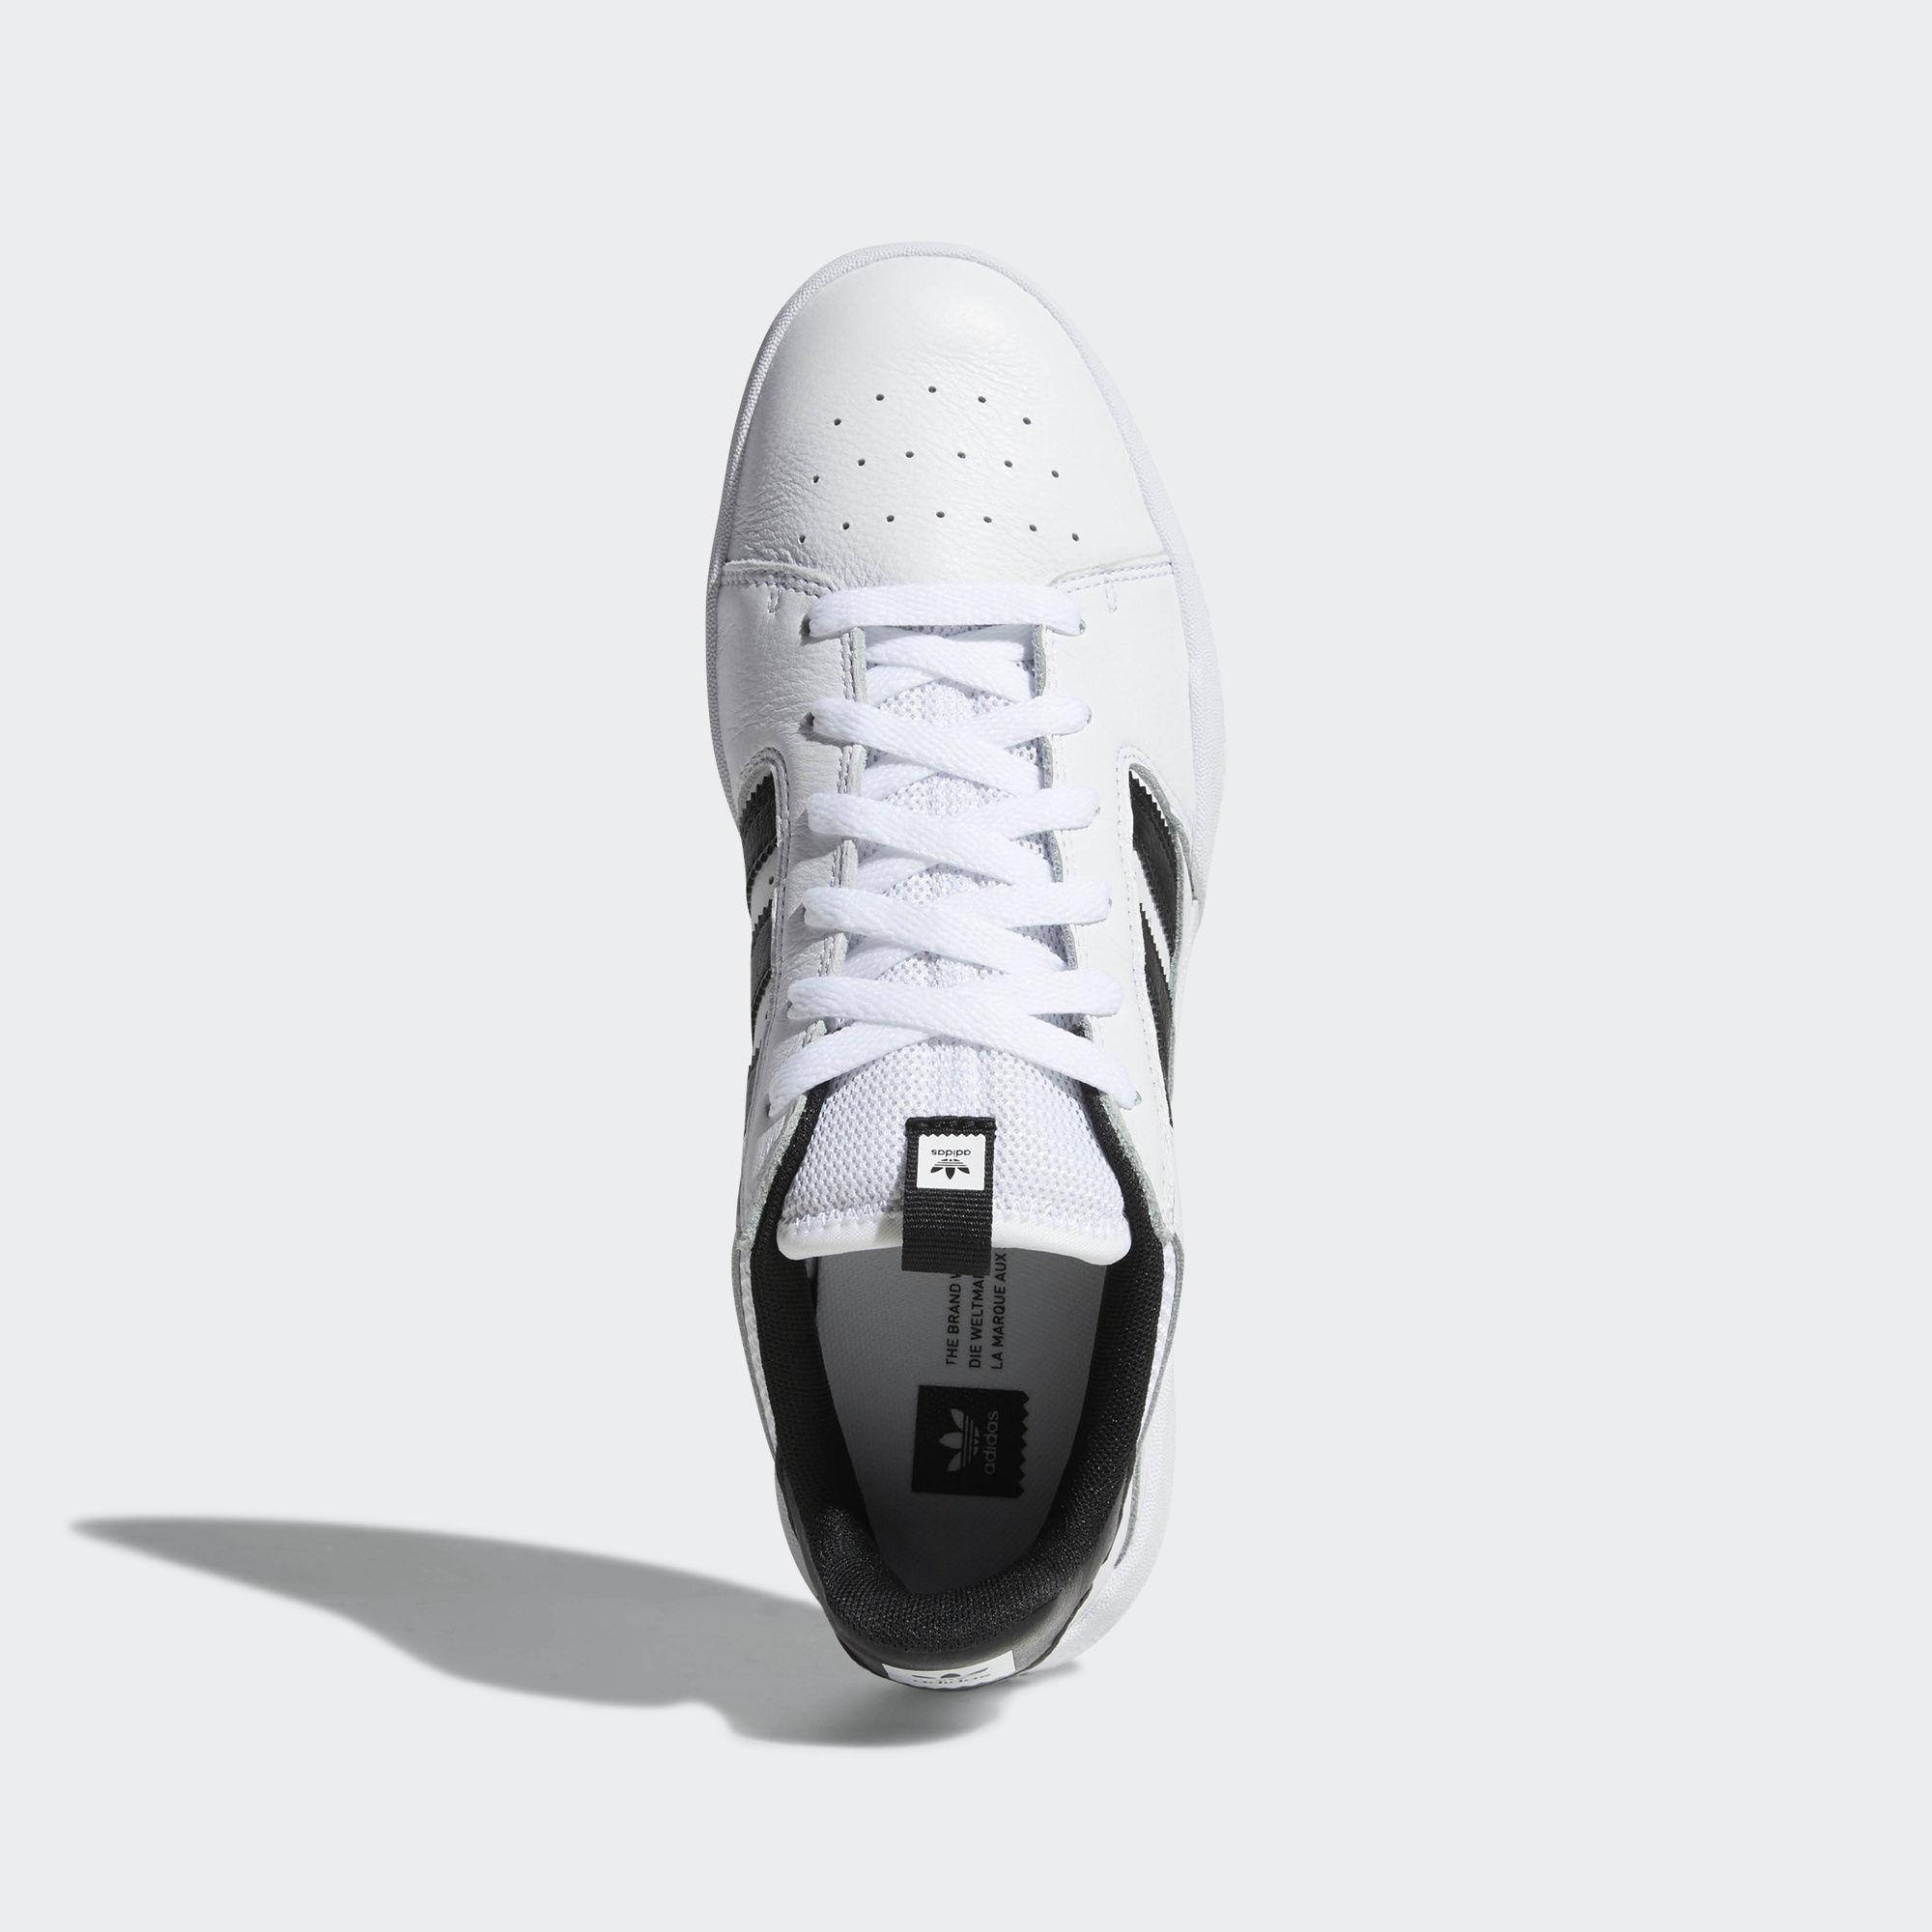 10c1a674191dd0 Adidas - White Vrx Cup Low Shoes for Men - Lyst. View fullscreen